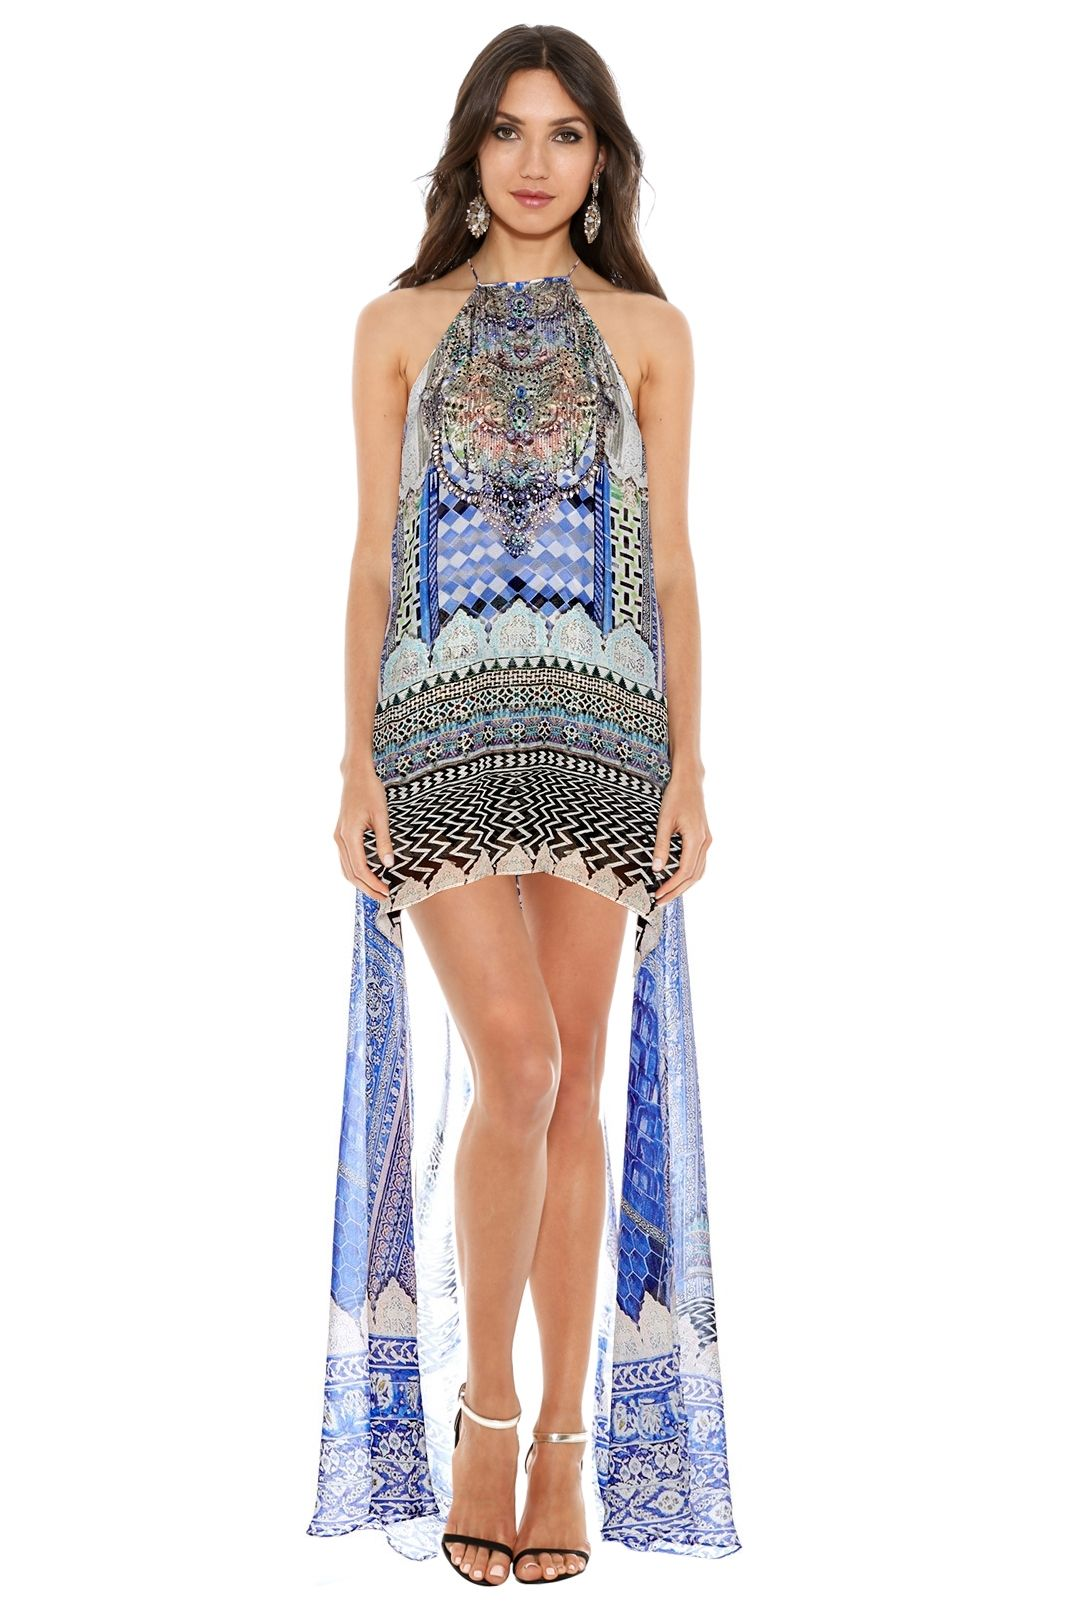 Camilla - Courtyard of Maidens Short Sheer Overlay Dress - Prints - Front